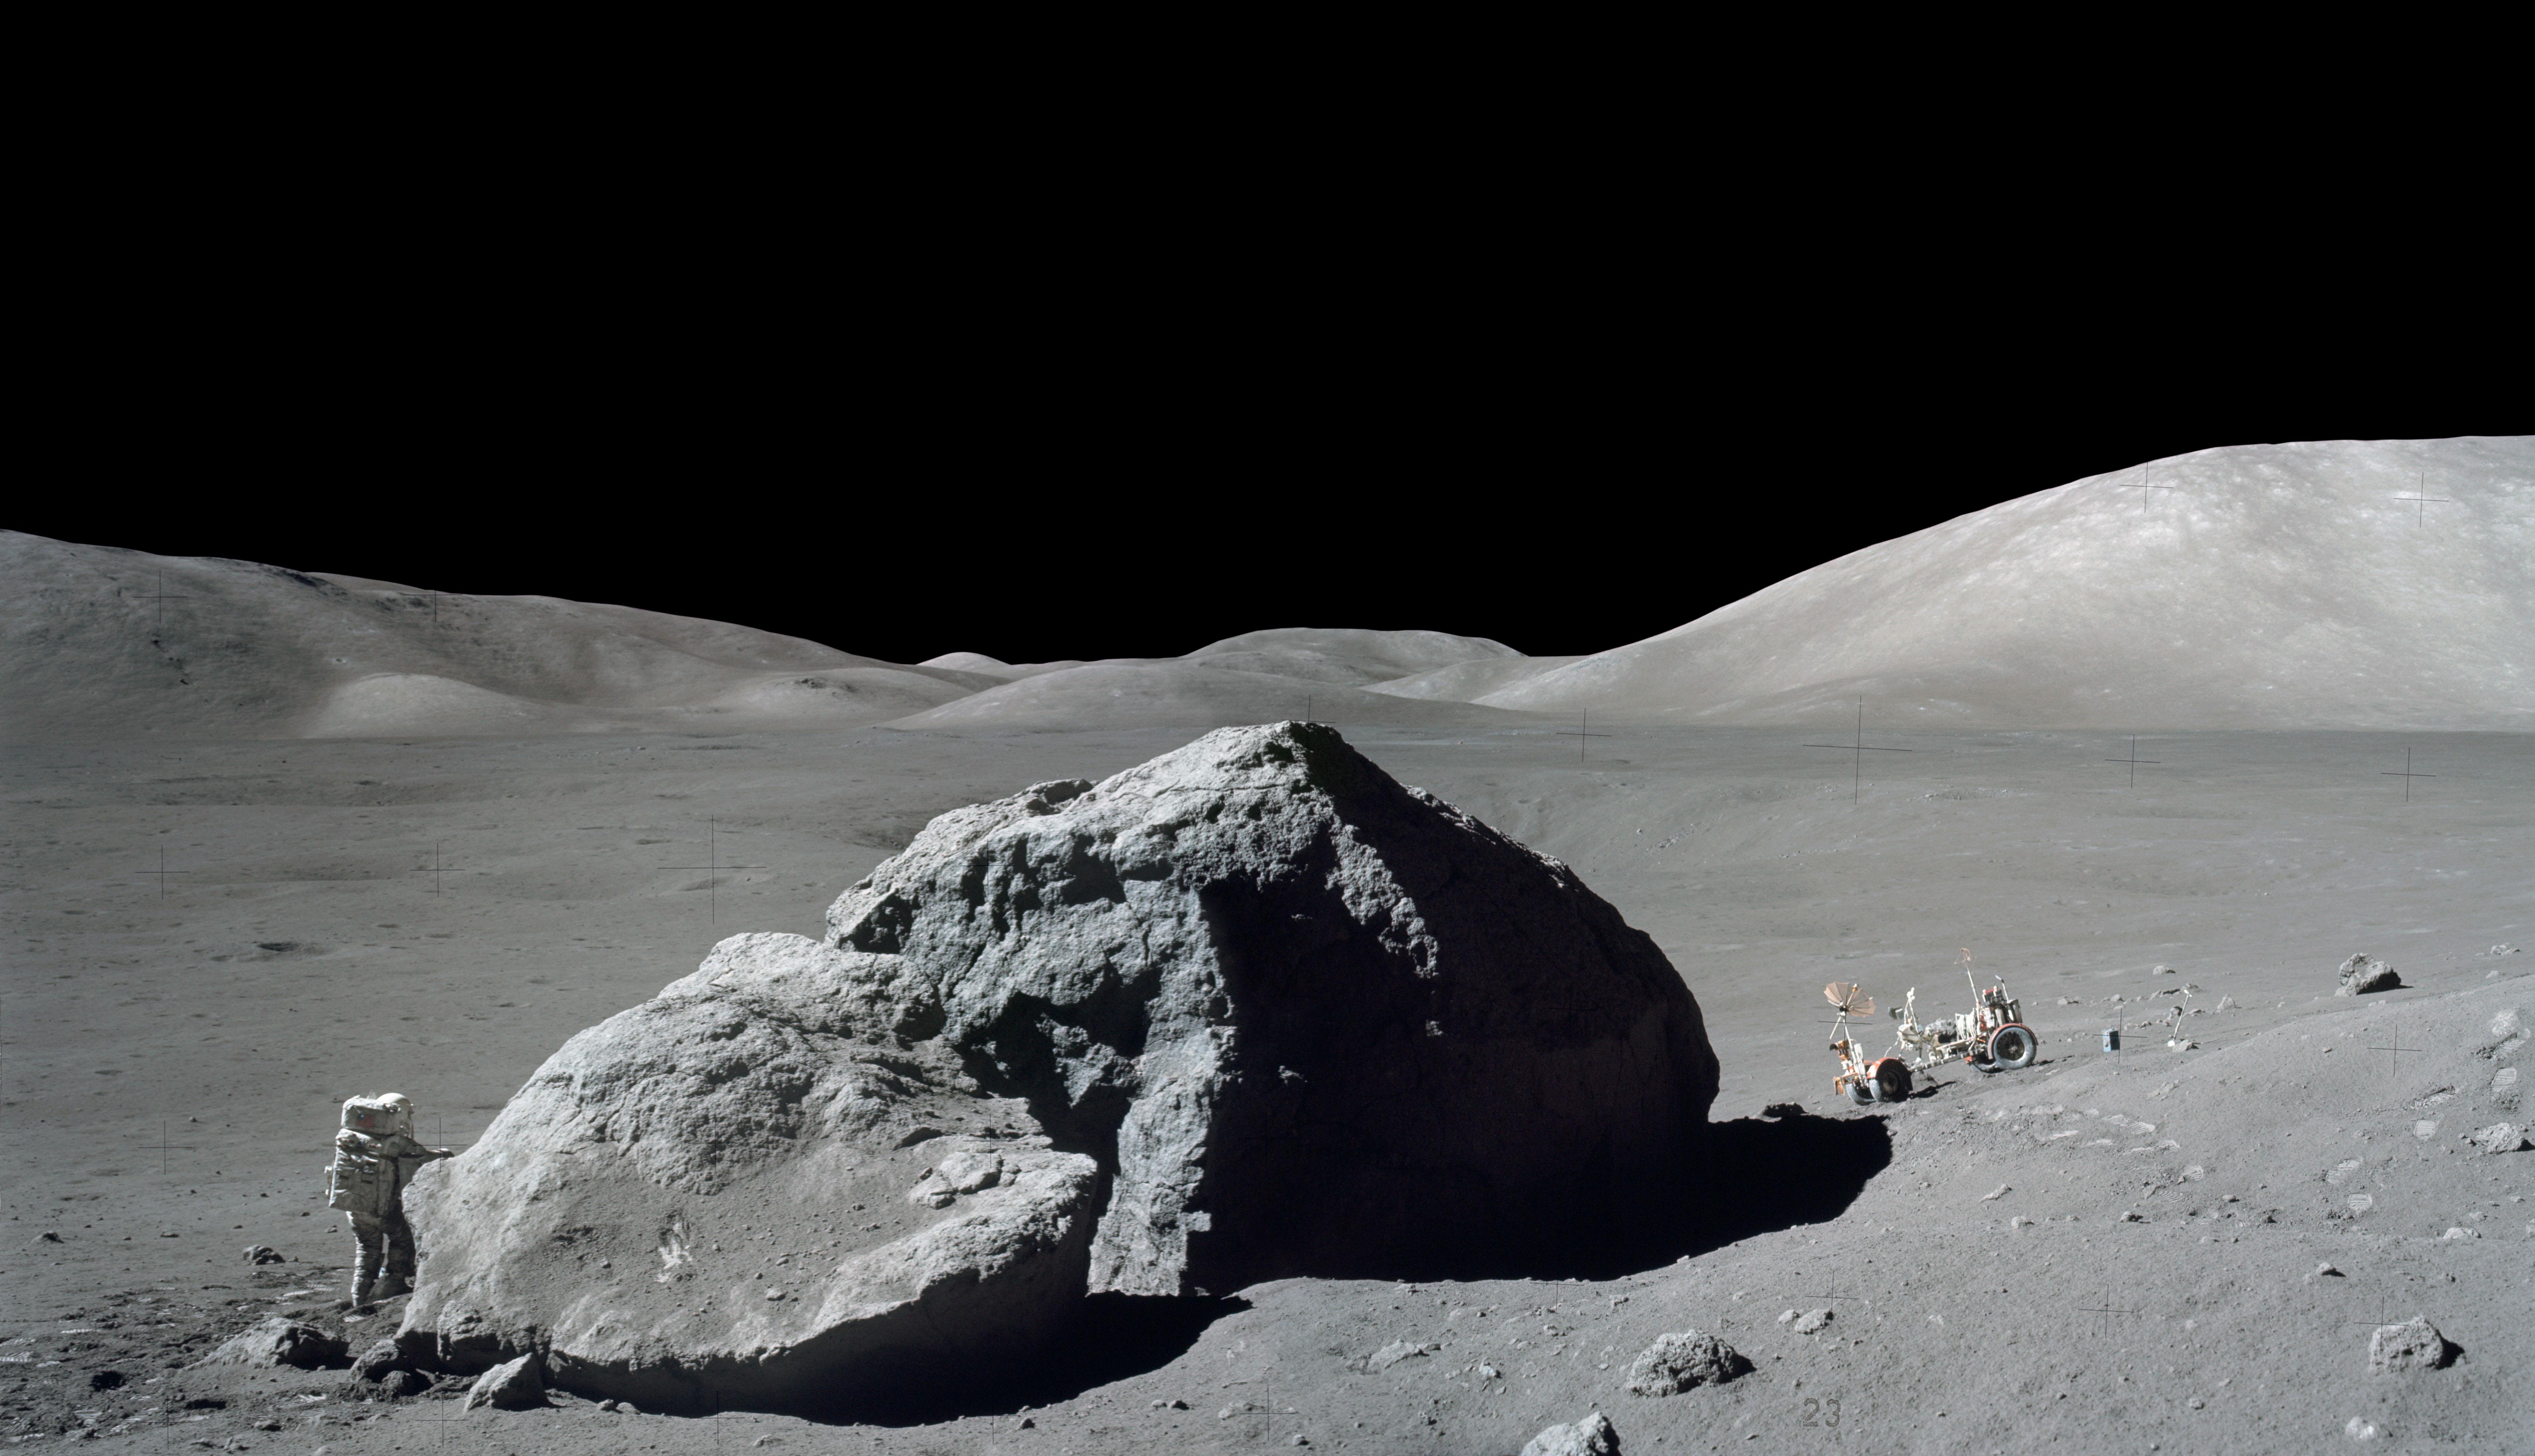 Astronaut and rover on the Moon